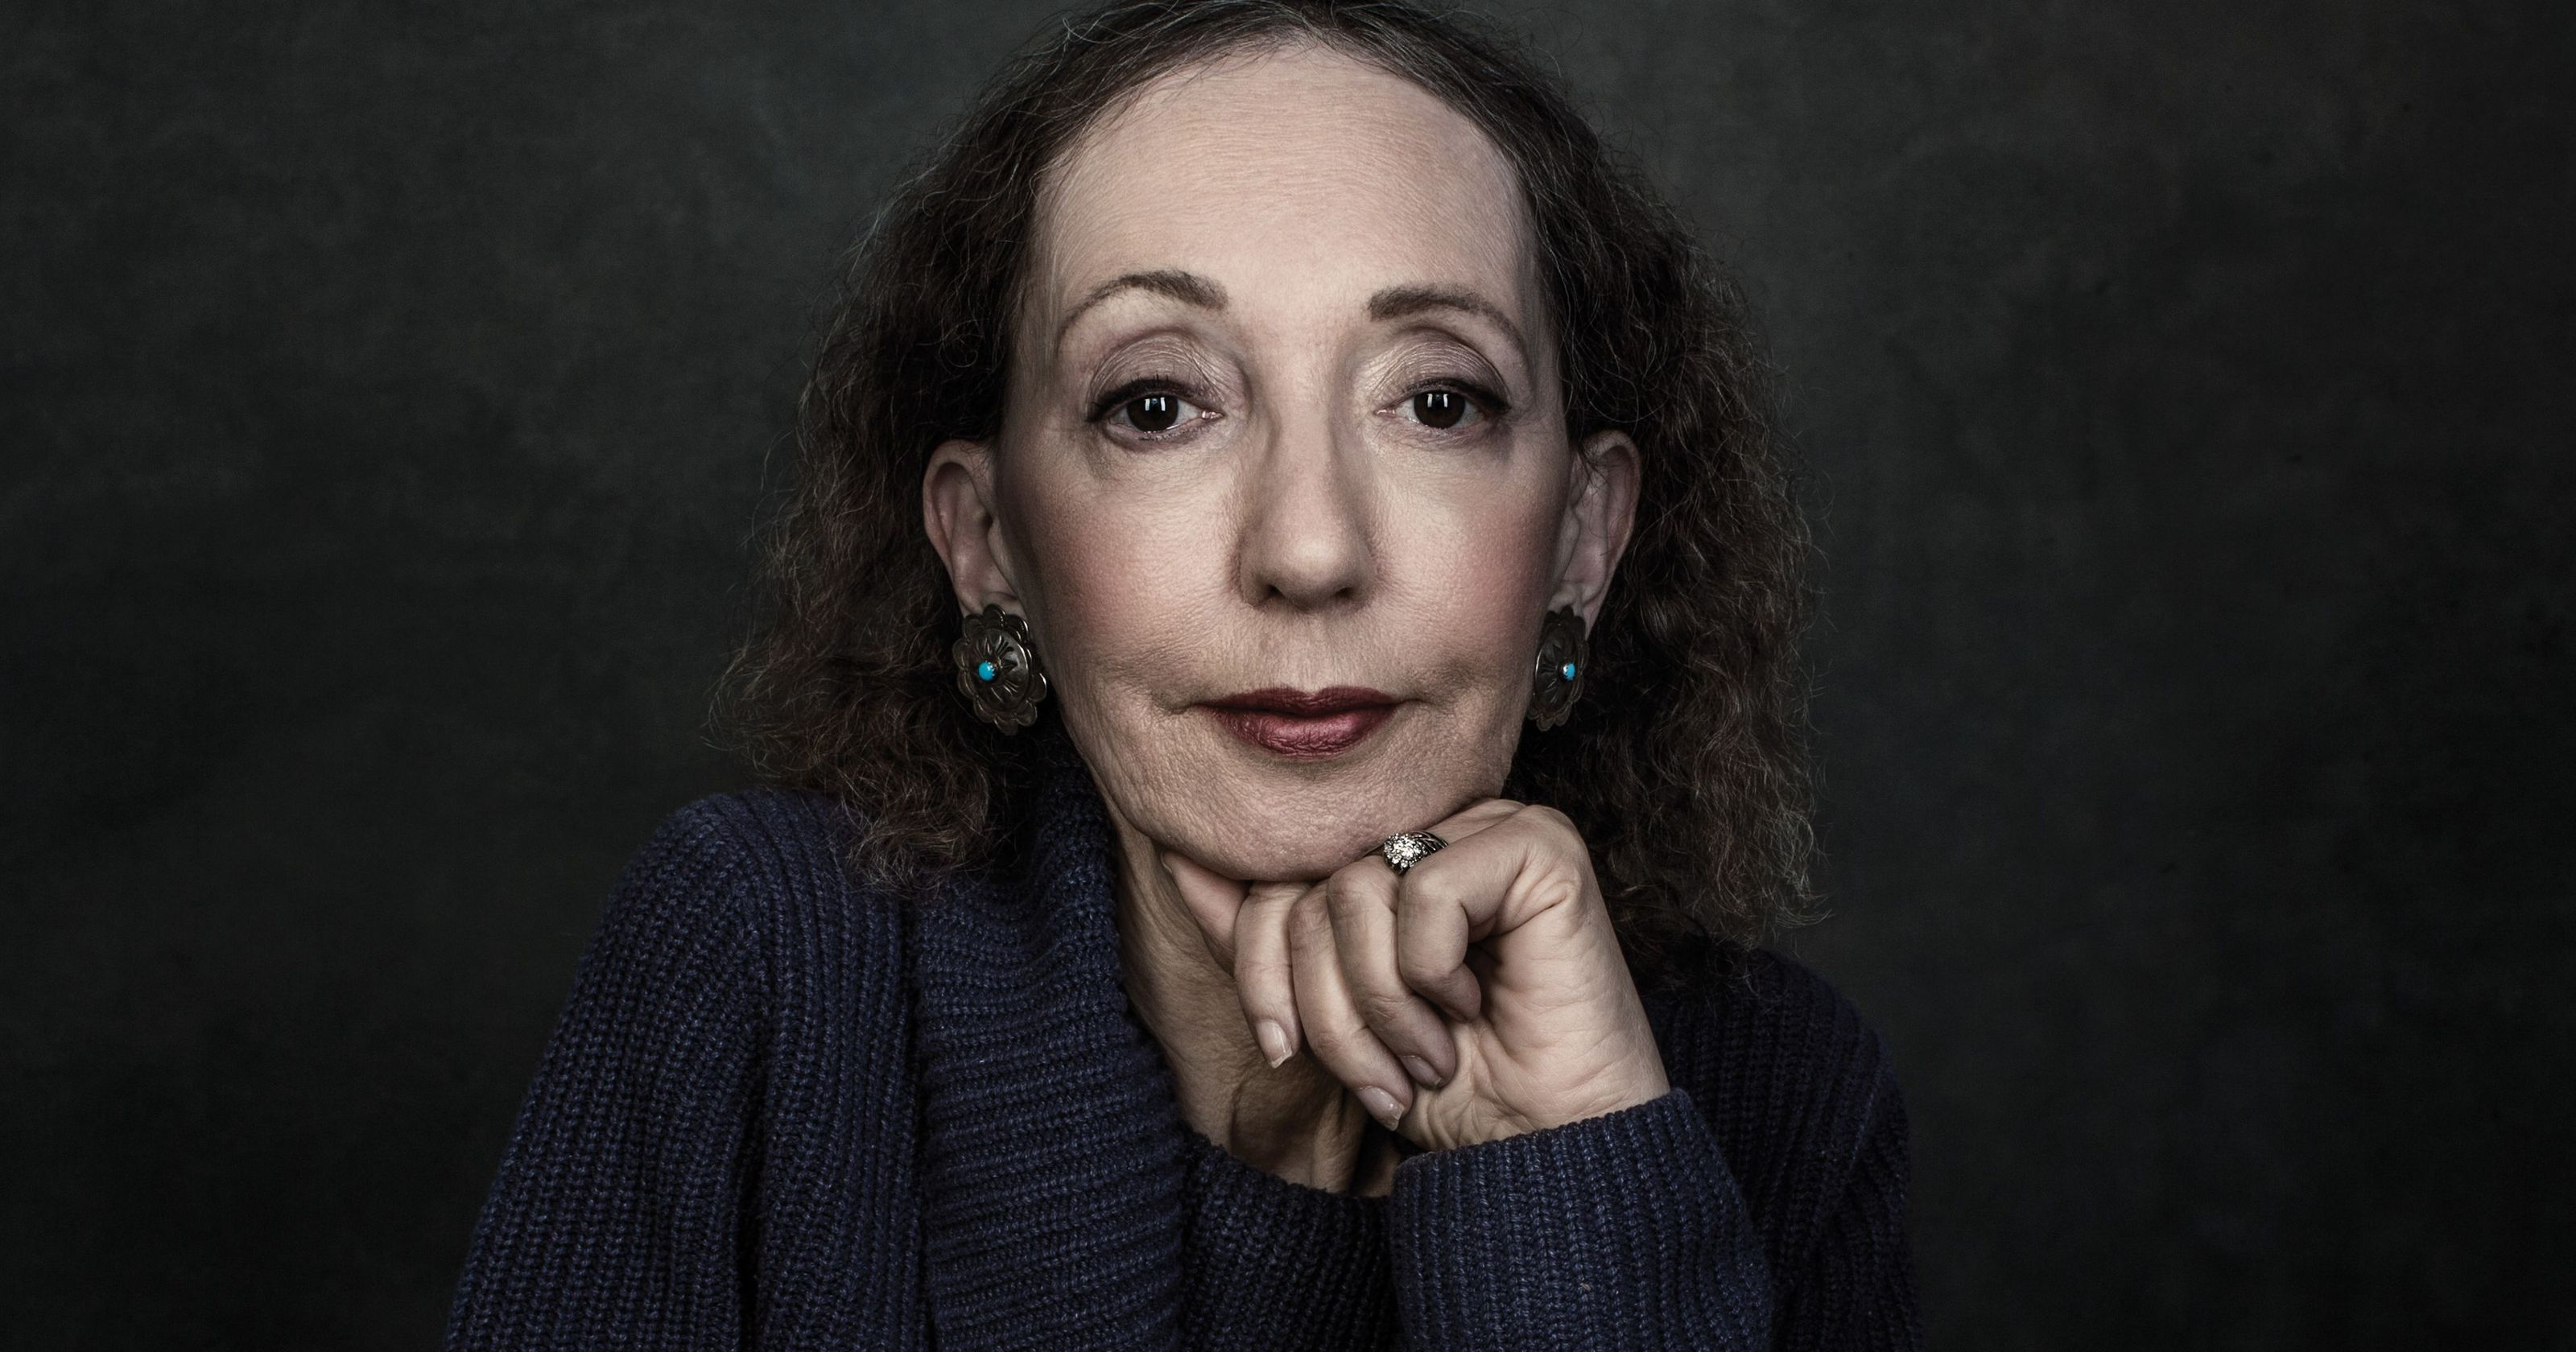 Joyce Carol Oates on Writing, Her Daily Routine, and the Importance of Reading Widely